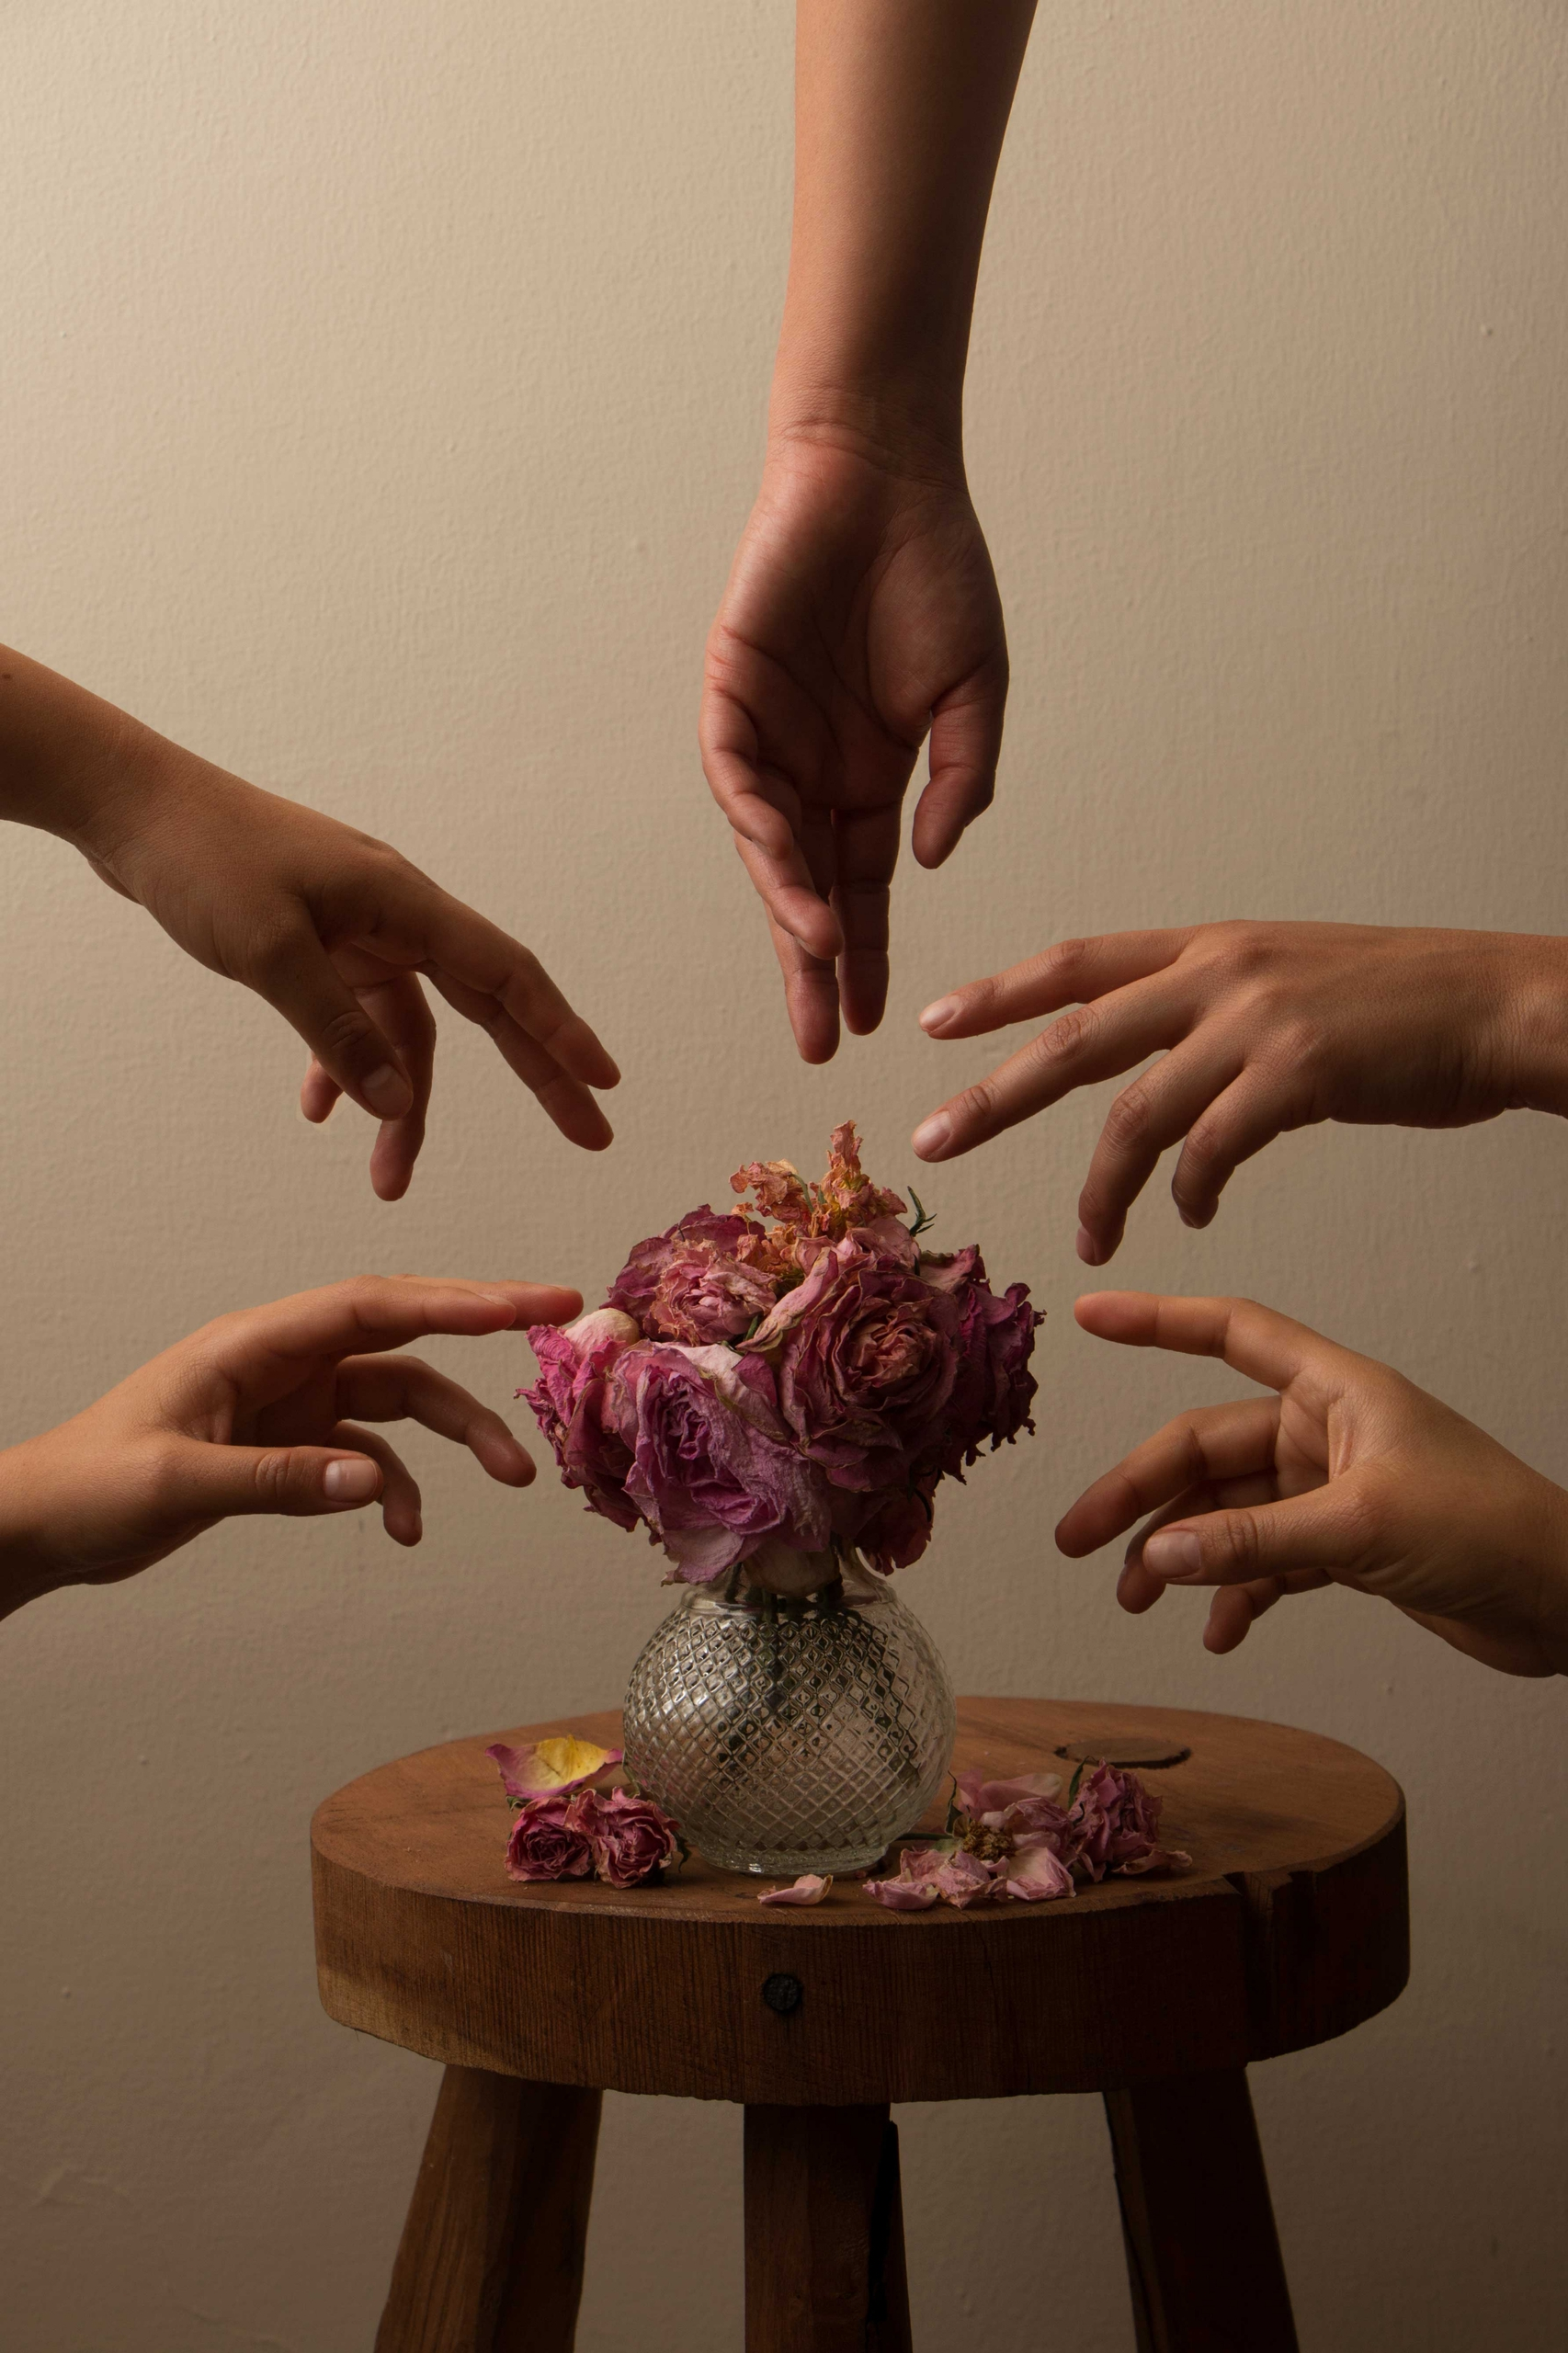 hands - portrait, flowers, photography - yiramos | ello